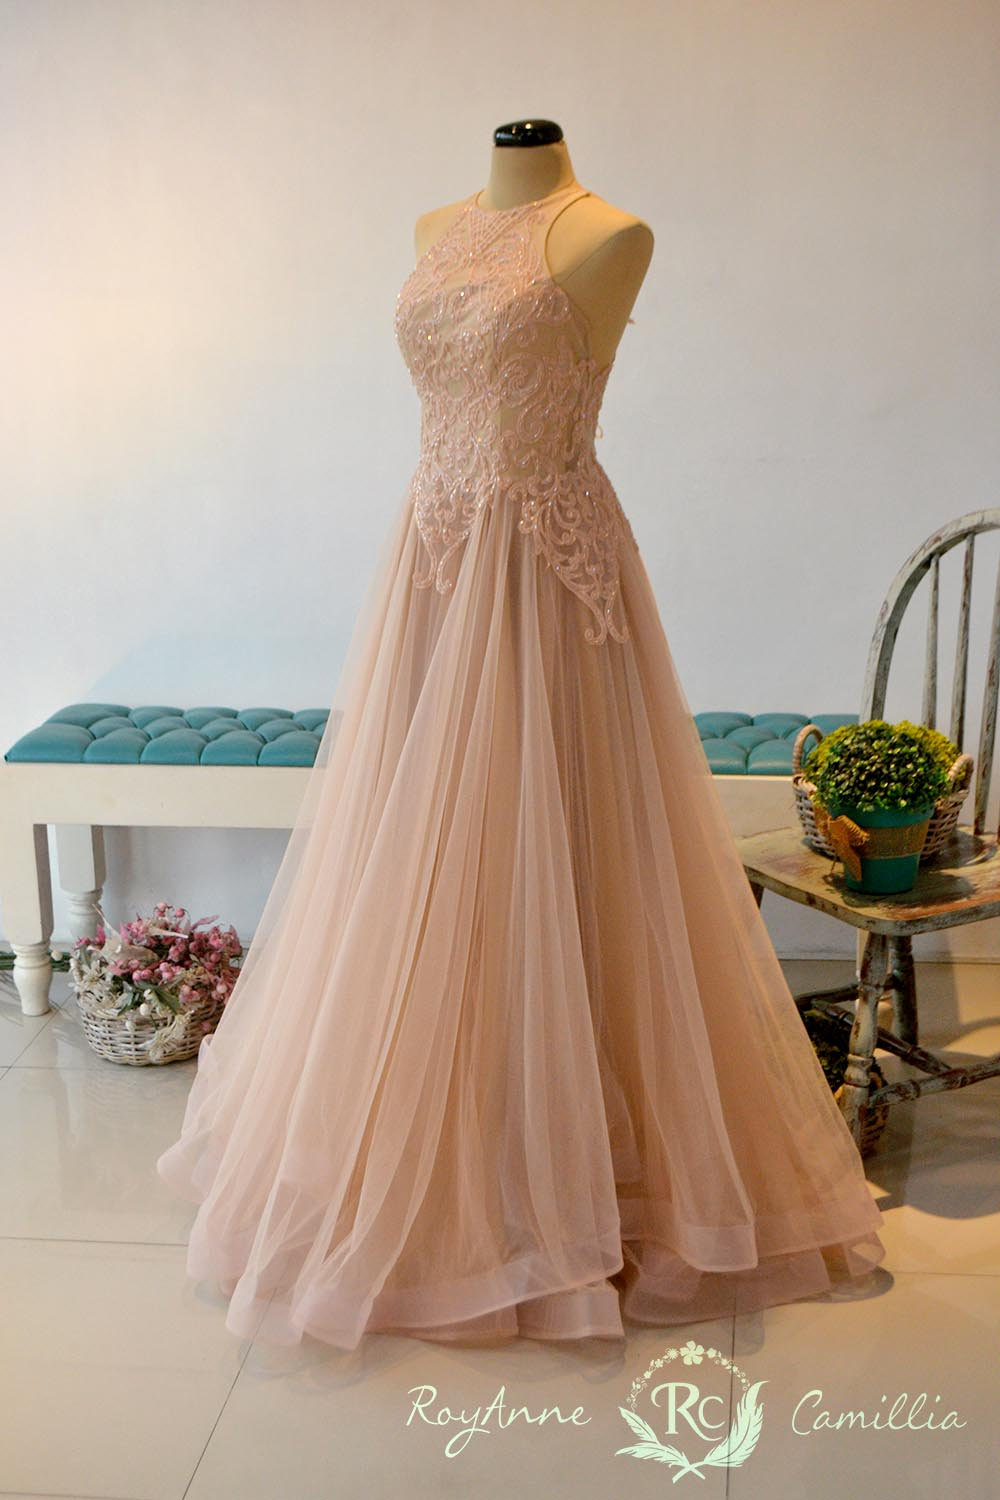 Bernadette - RoyAnne Camillia Couture- Bridal Gowns and Gown rentals ...